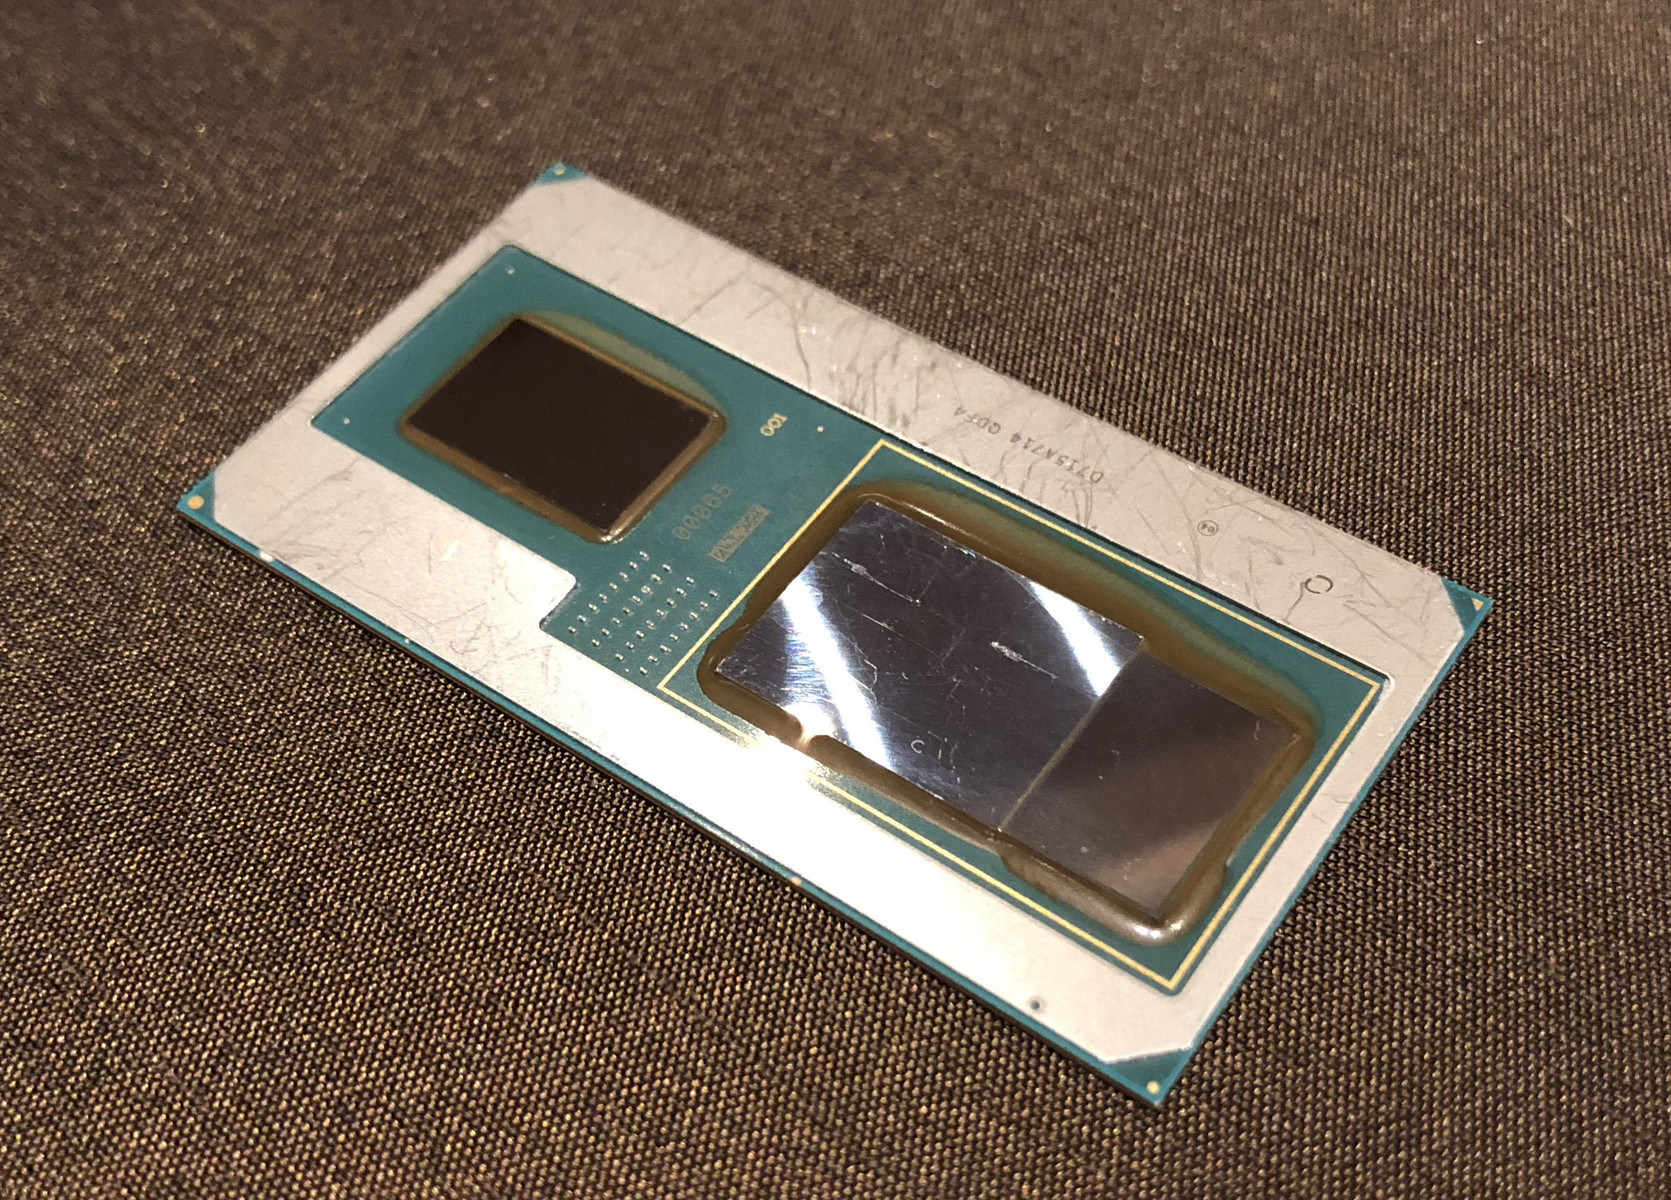 Image of article 'After a year long wait, Kaby Lake-G finally gets a driver update... from AMD'